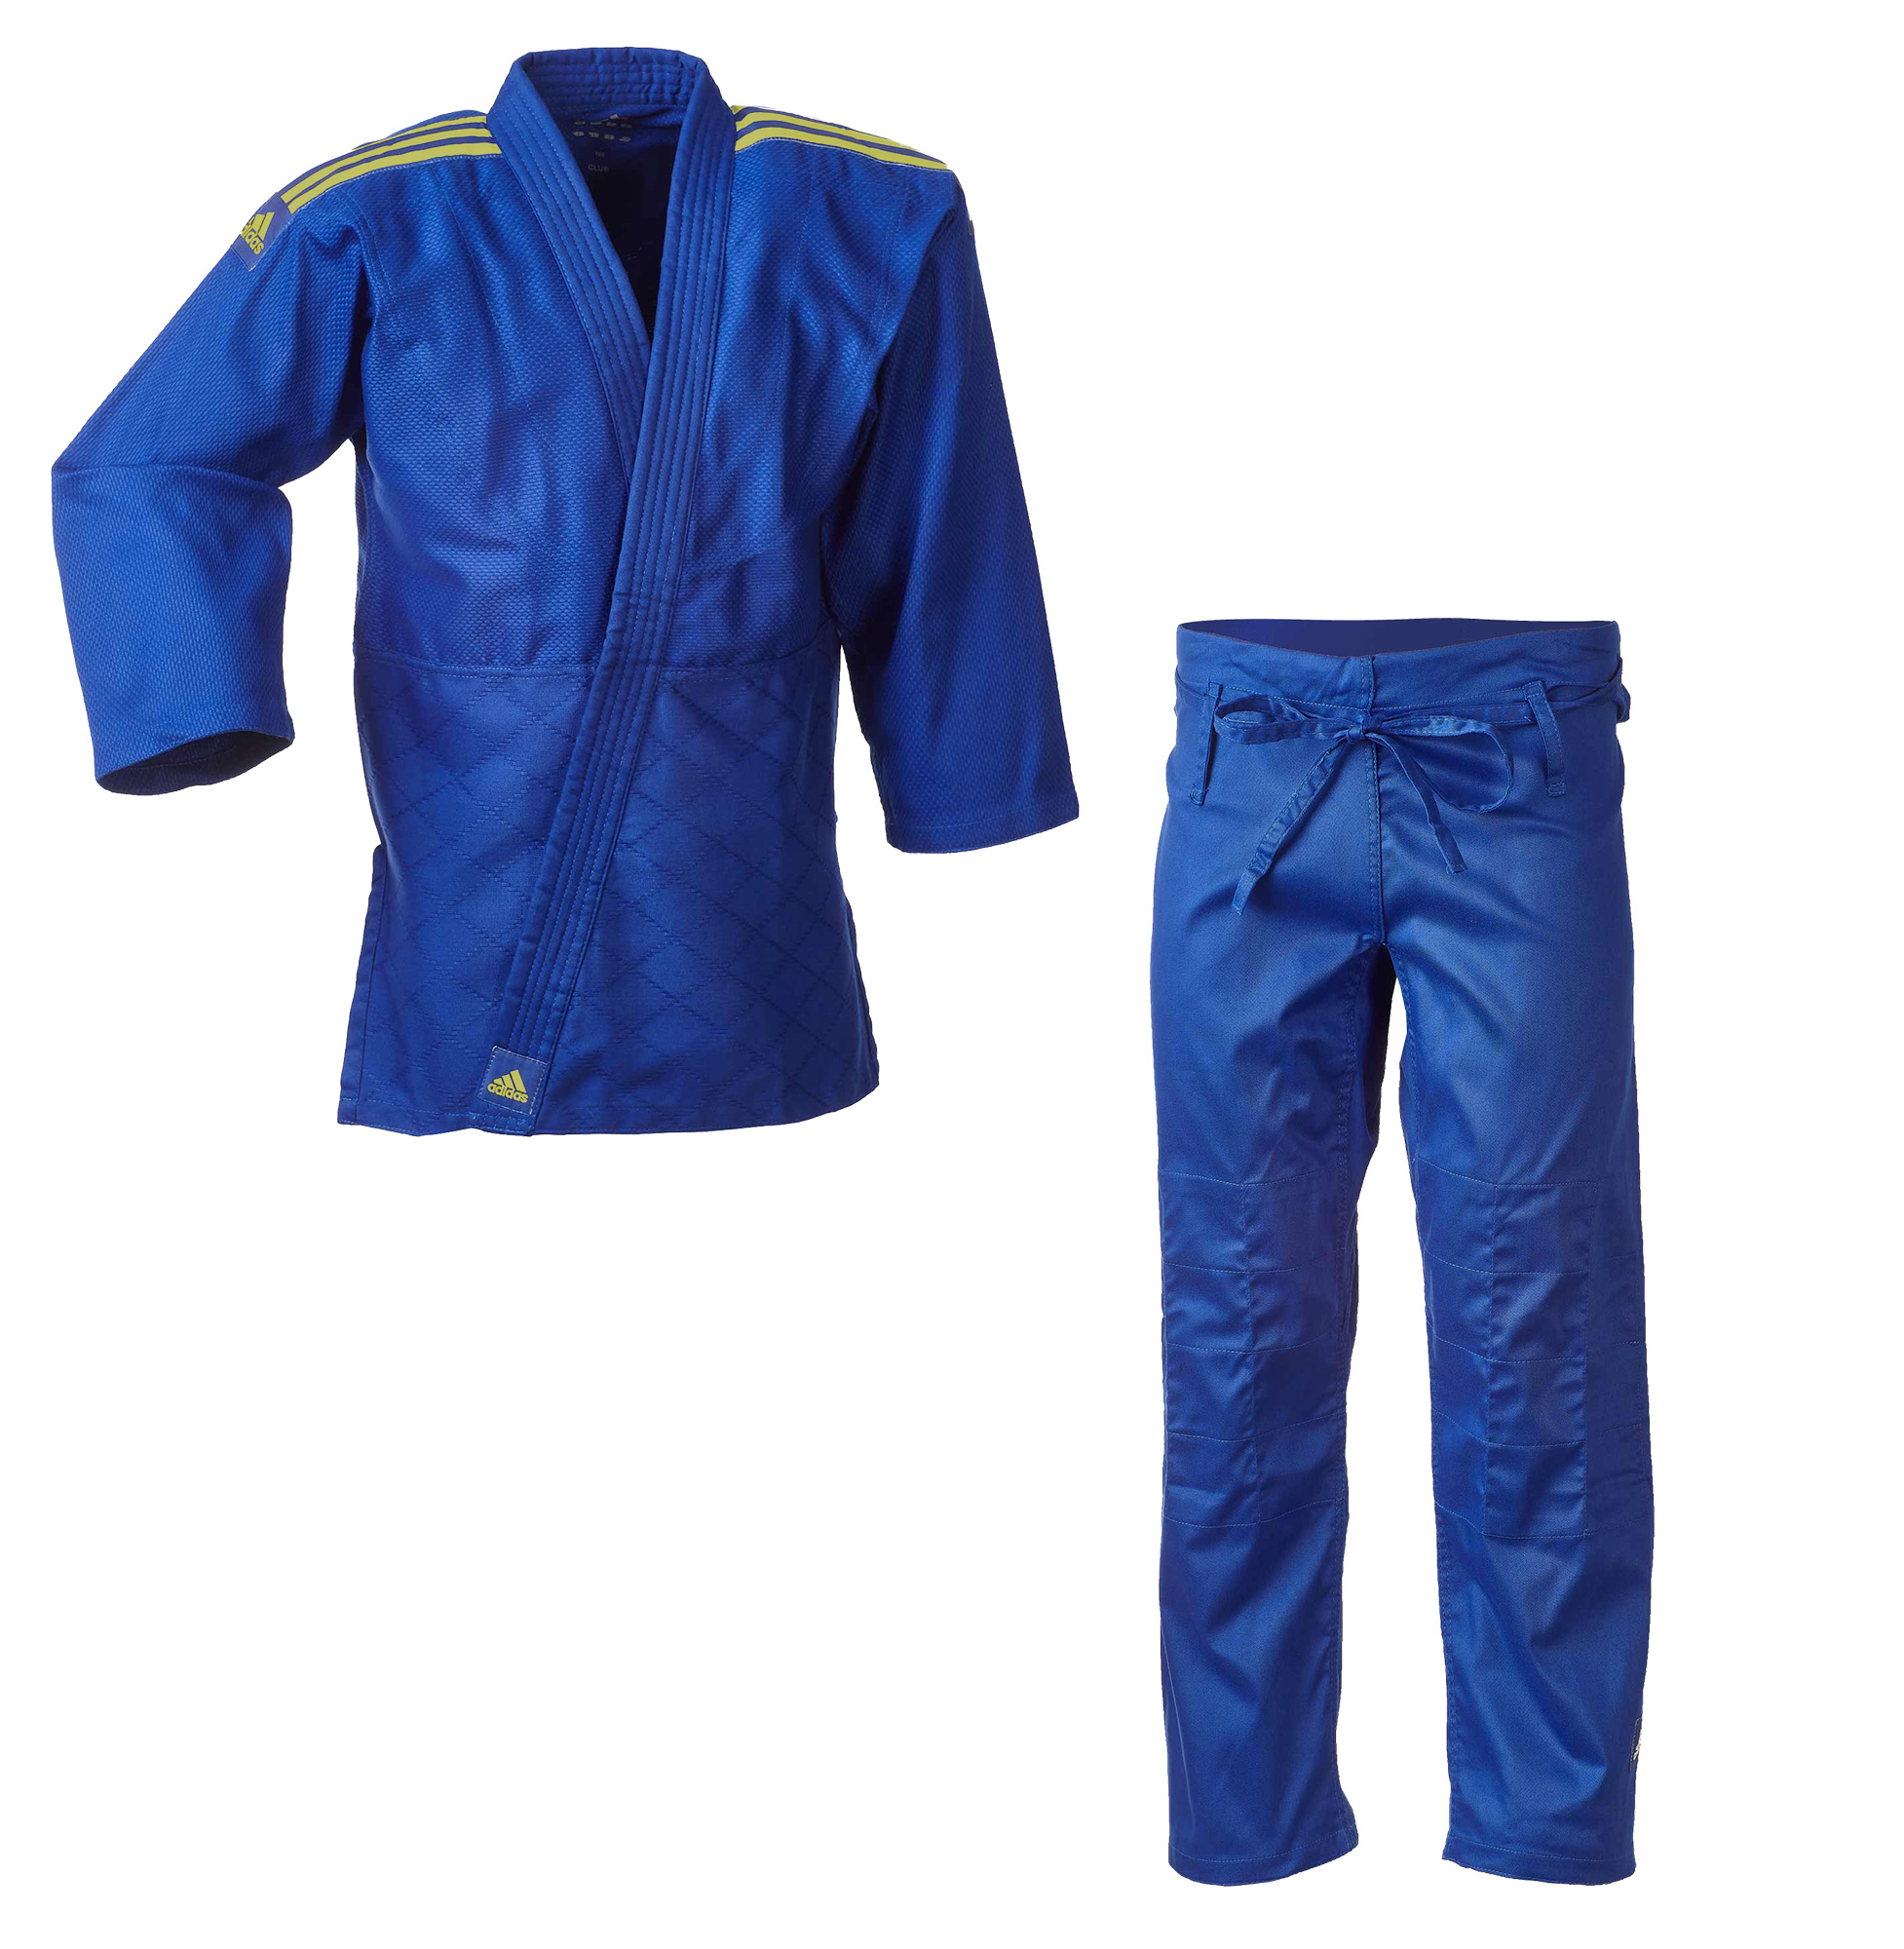 J350 Club Gi BLUE & Gold Stripes